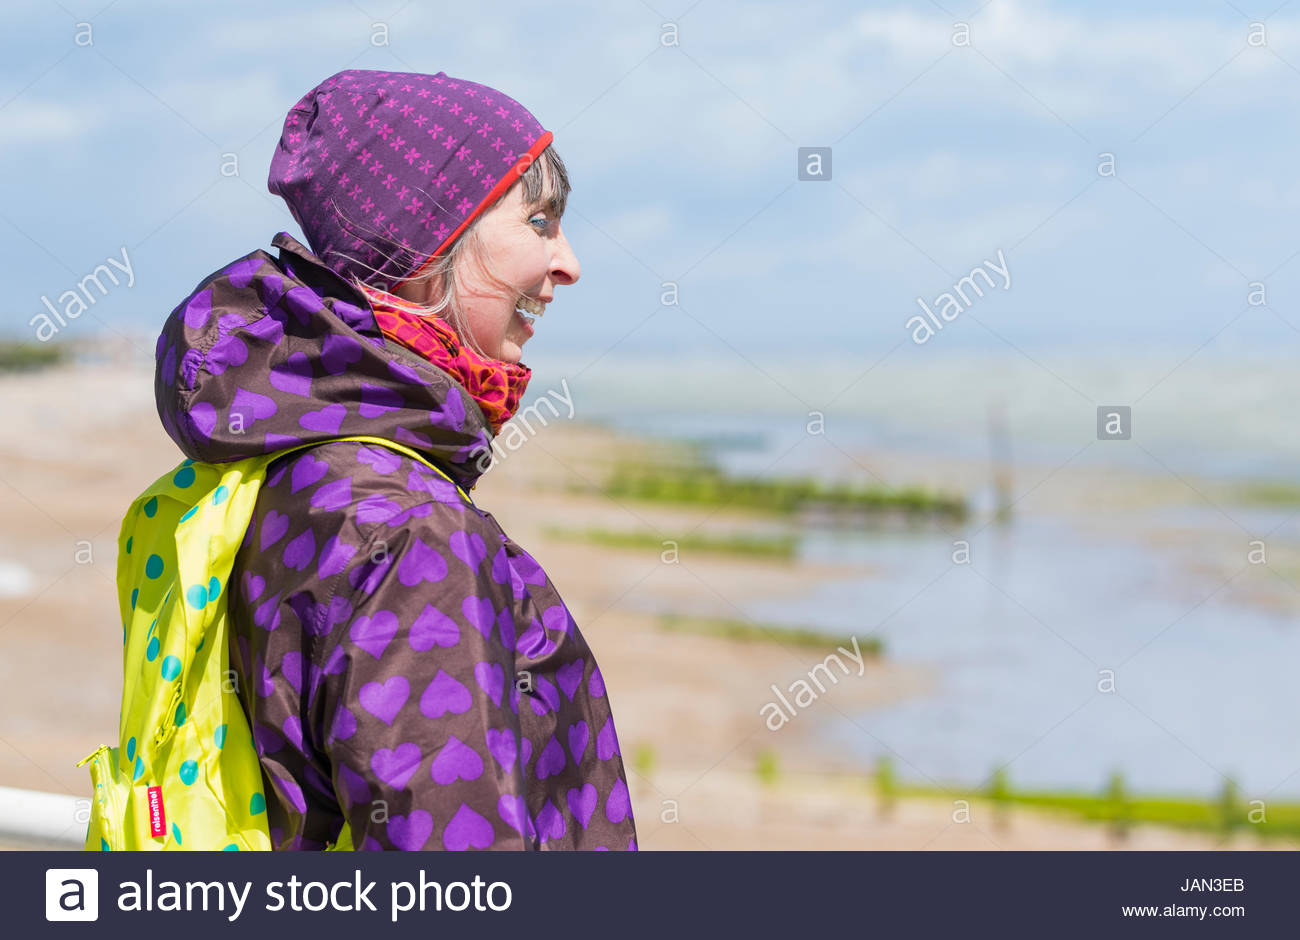 woman-dressed-in-a-hat-and-coat-on-a-windy-dull-day-at-the-seaside-JAN3EB.jpg